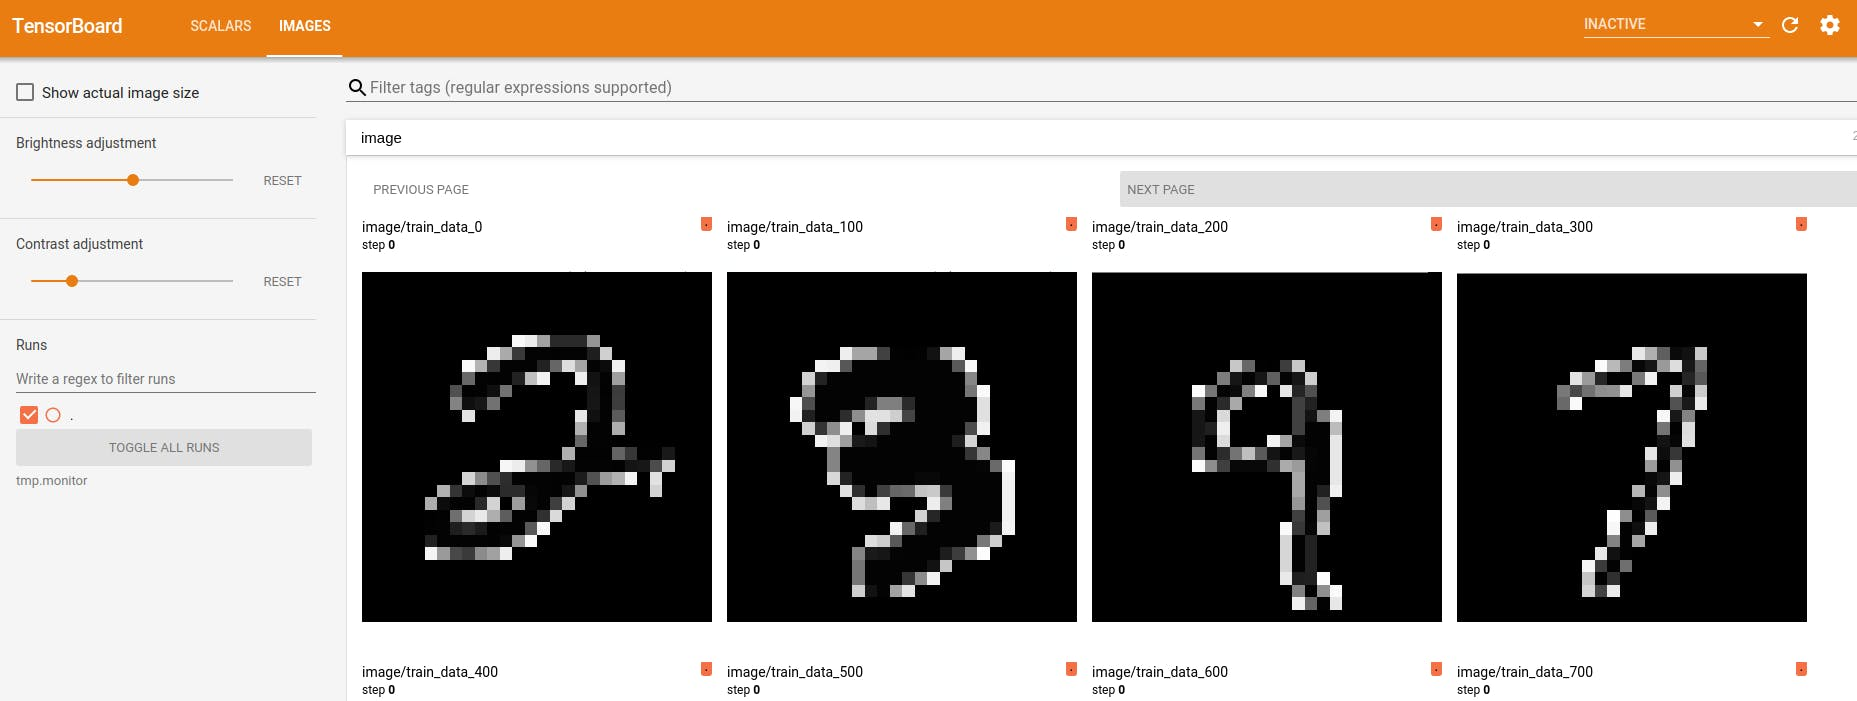 mnist_image.png